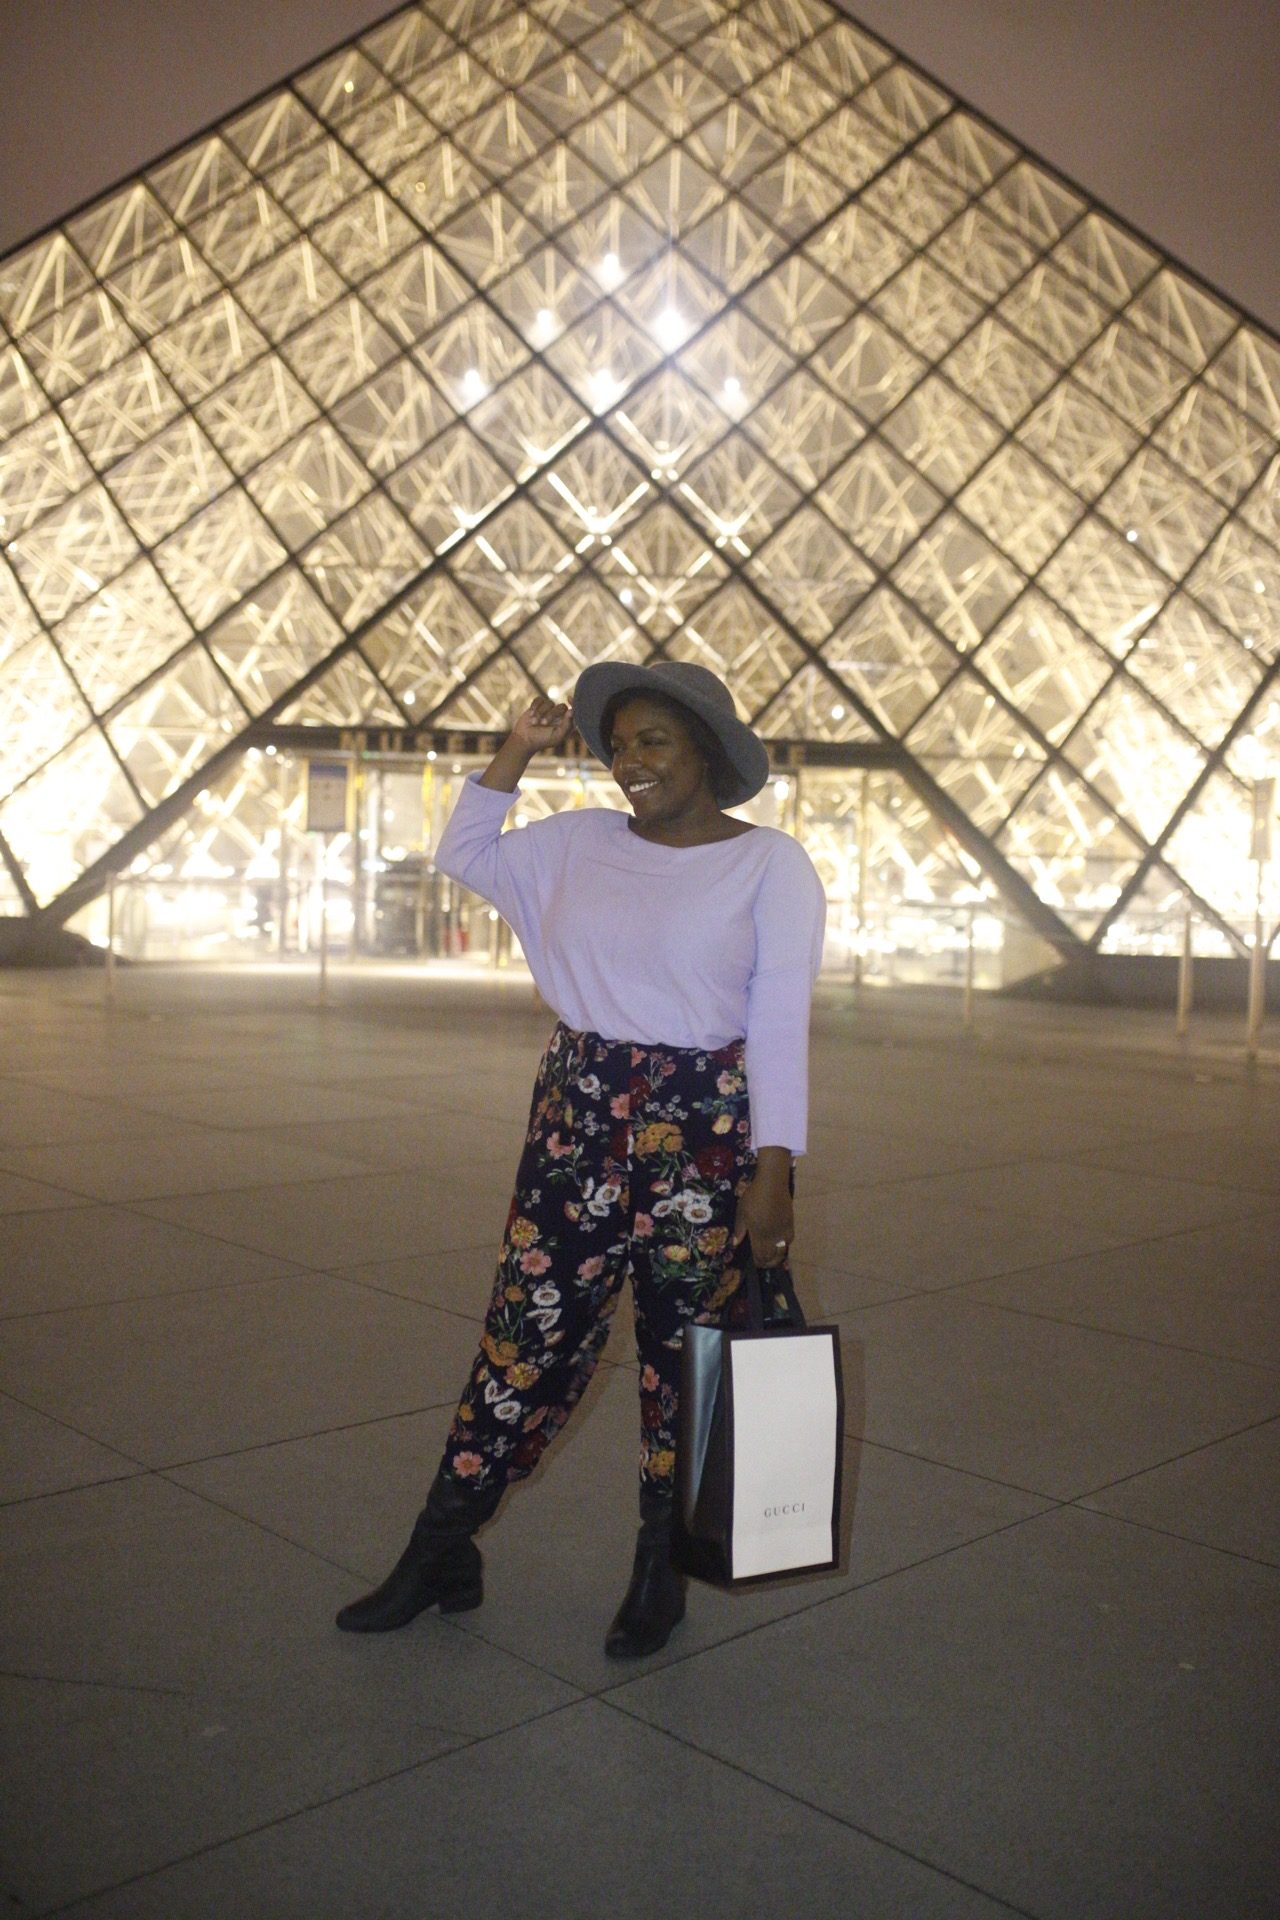 tampa bloger ayana lage stands in front of the louvre museum in paris, france